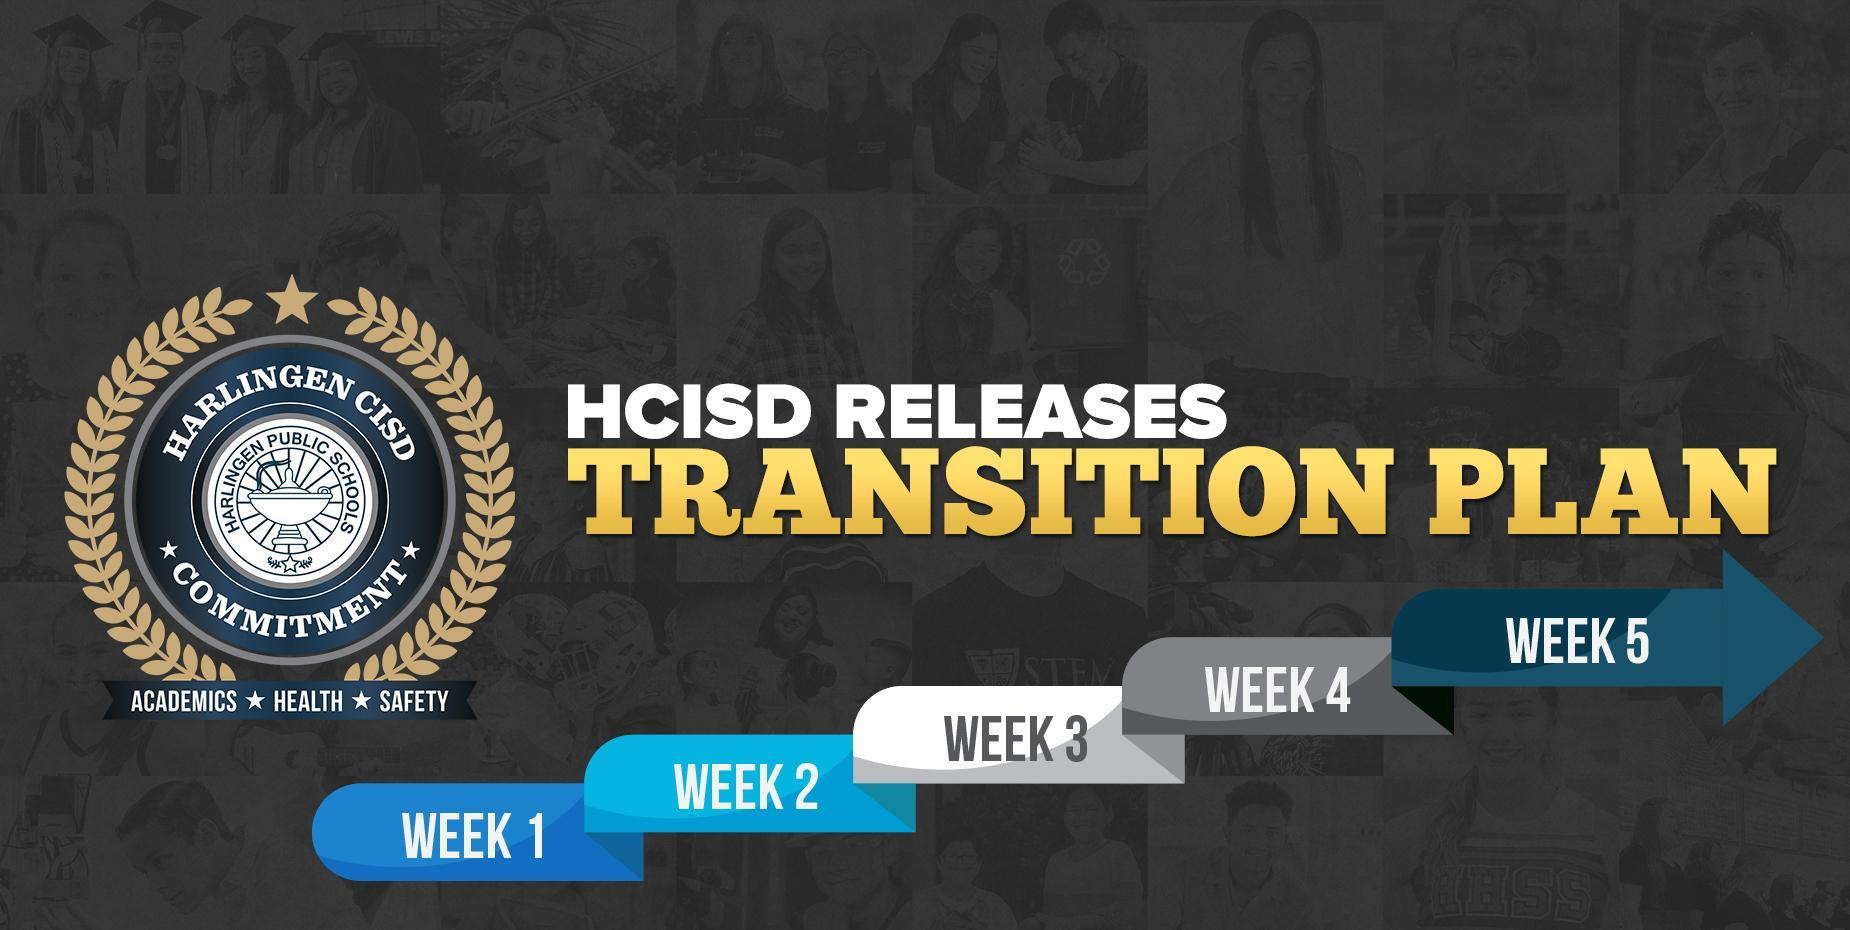 HCISD RELEASES TRANSITION PLAN